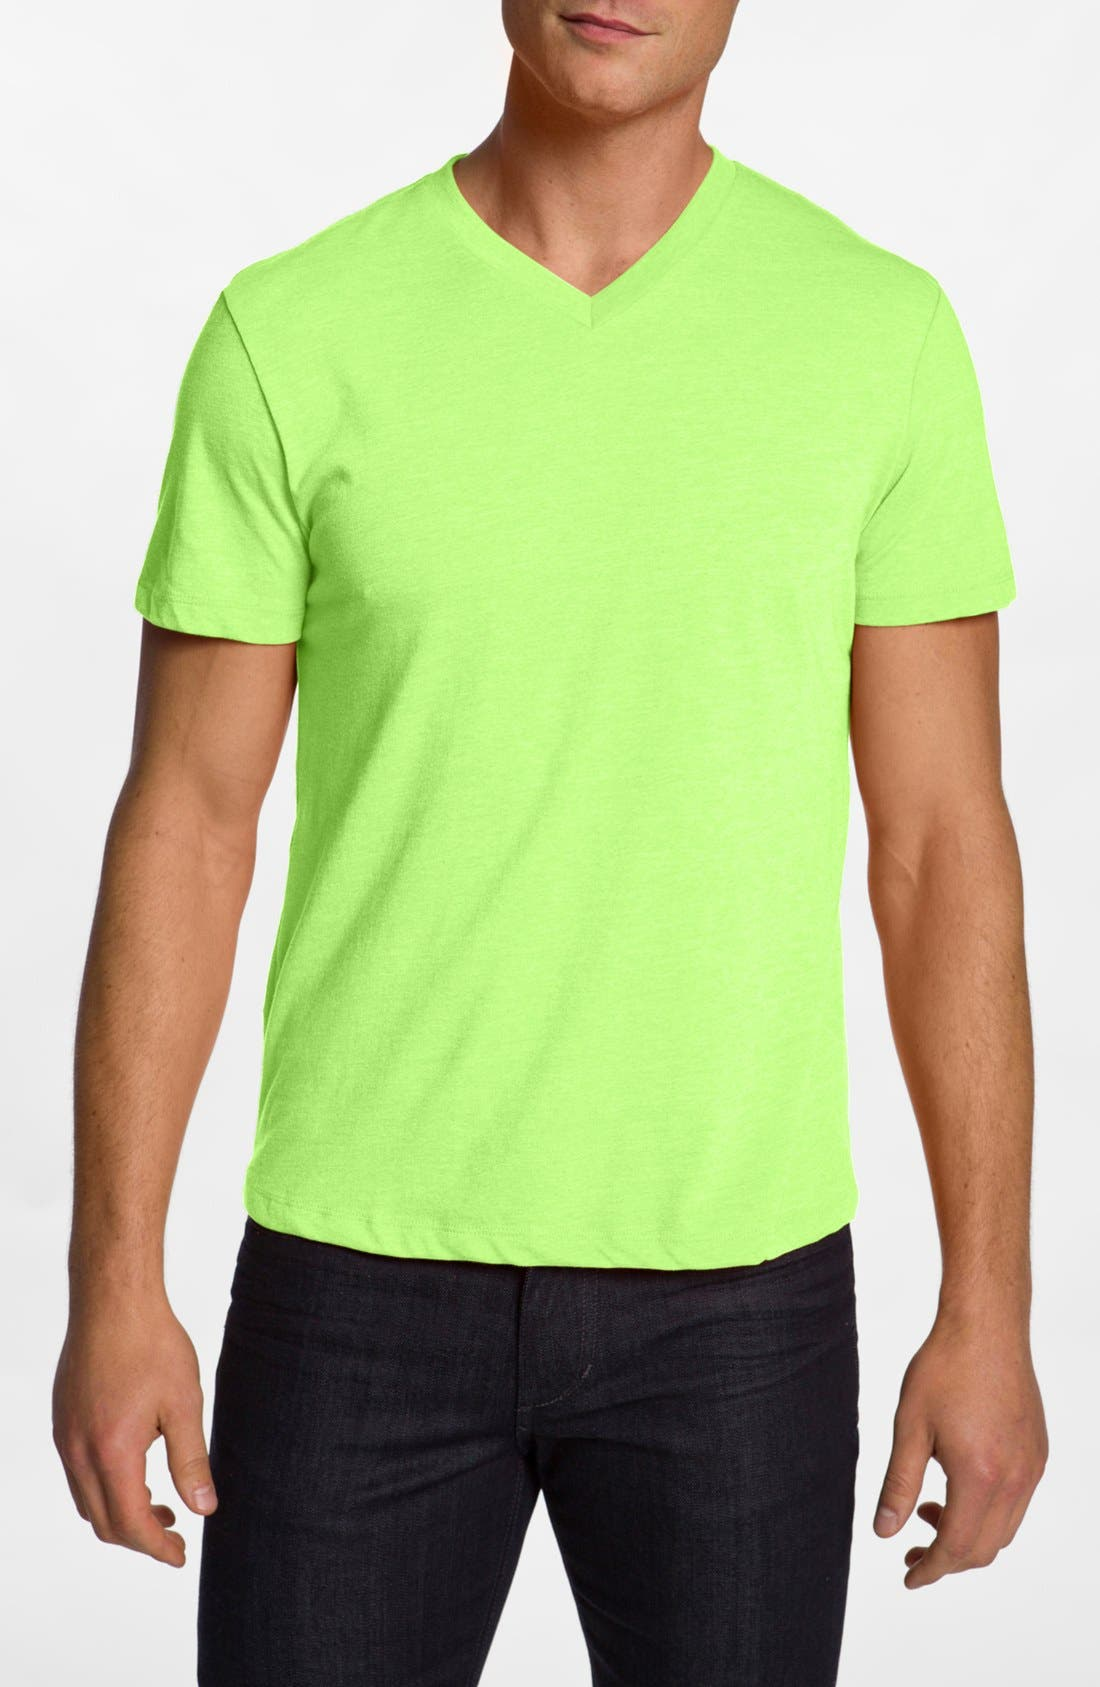 Alternate Image 1 Selected - The Rail Trim Fit V-Neck T-Shirt